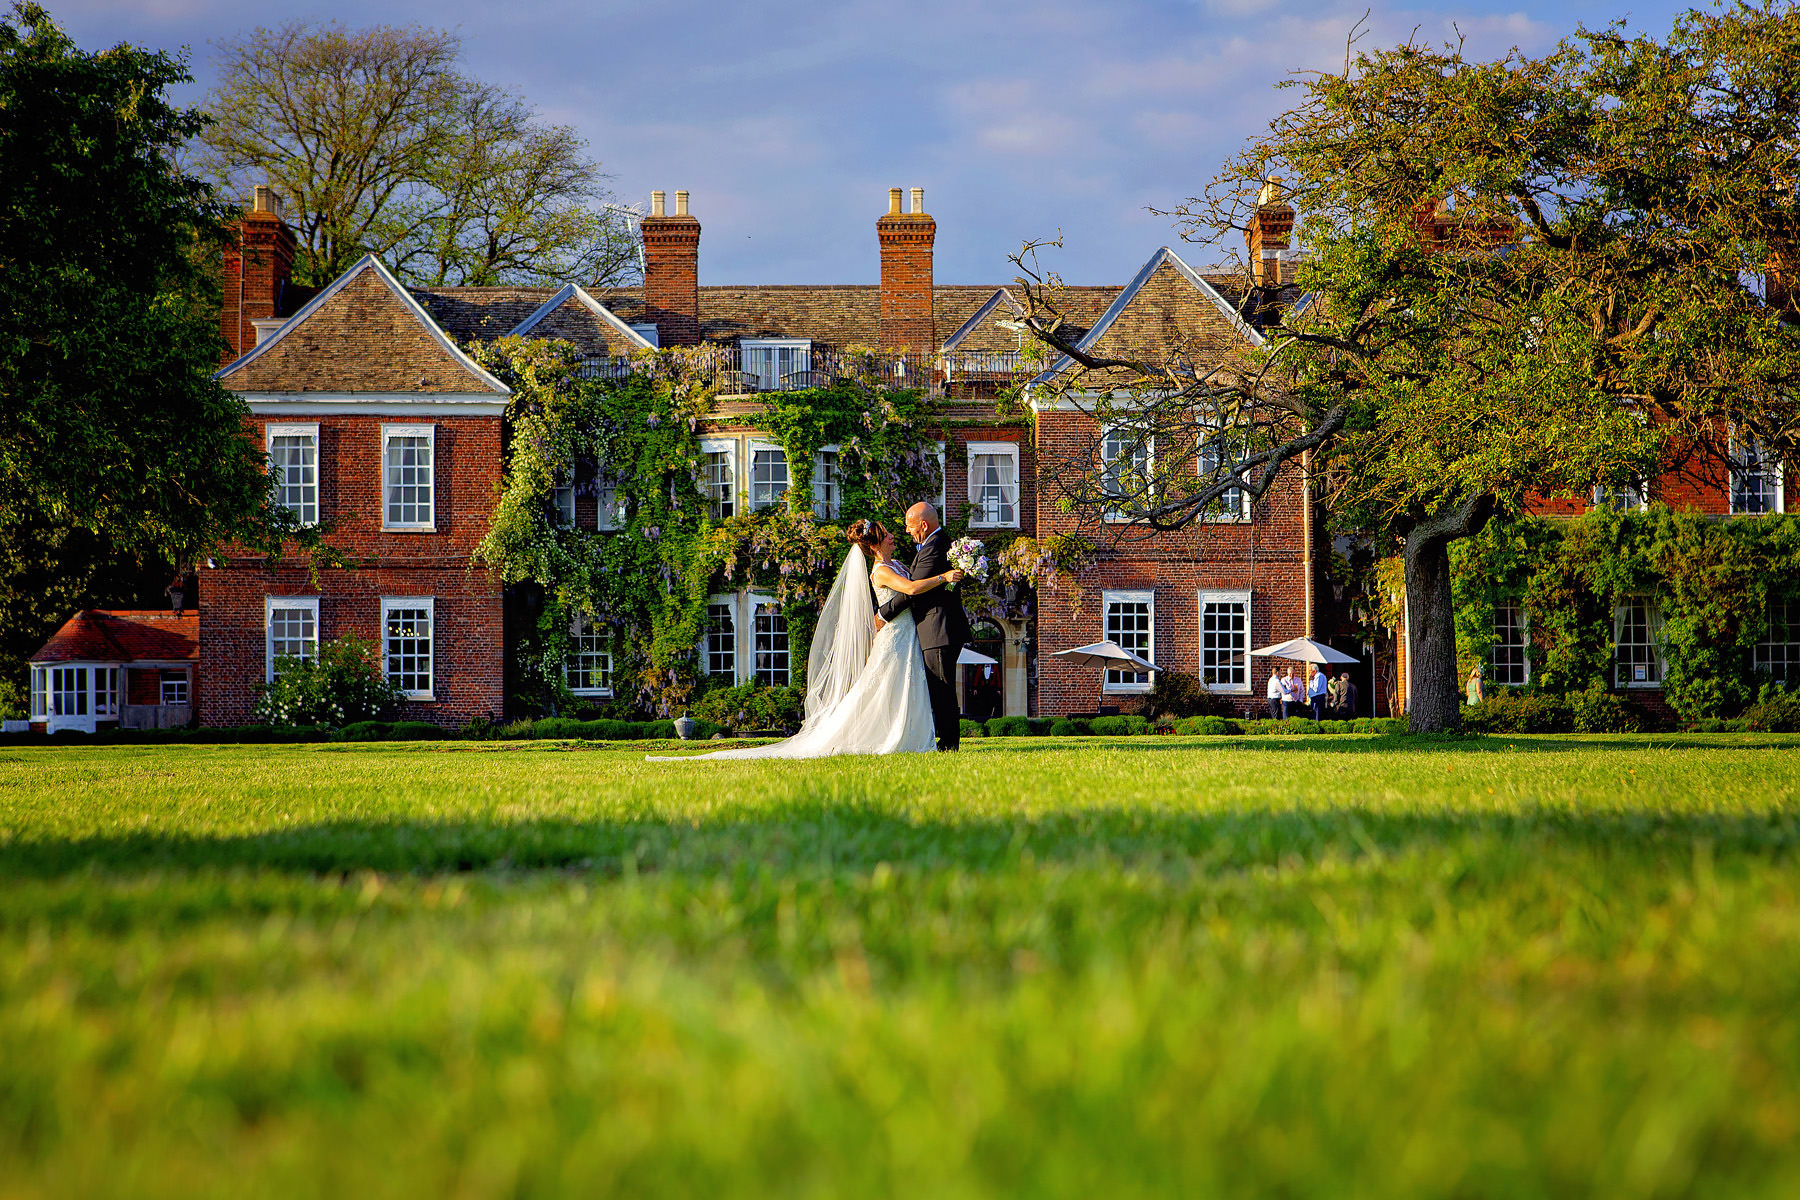 The rear of Anstey Hall bathed in early evening sunlight - perfect for wedding photos.